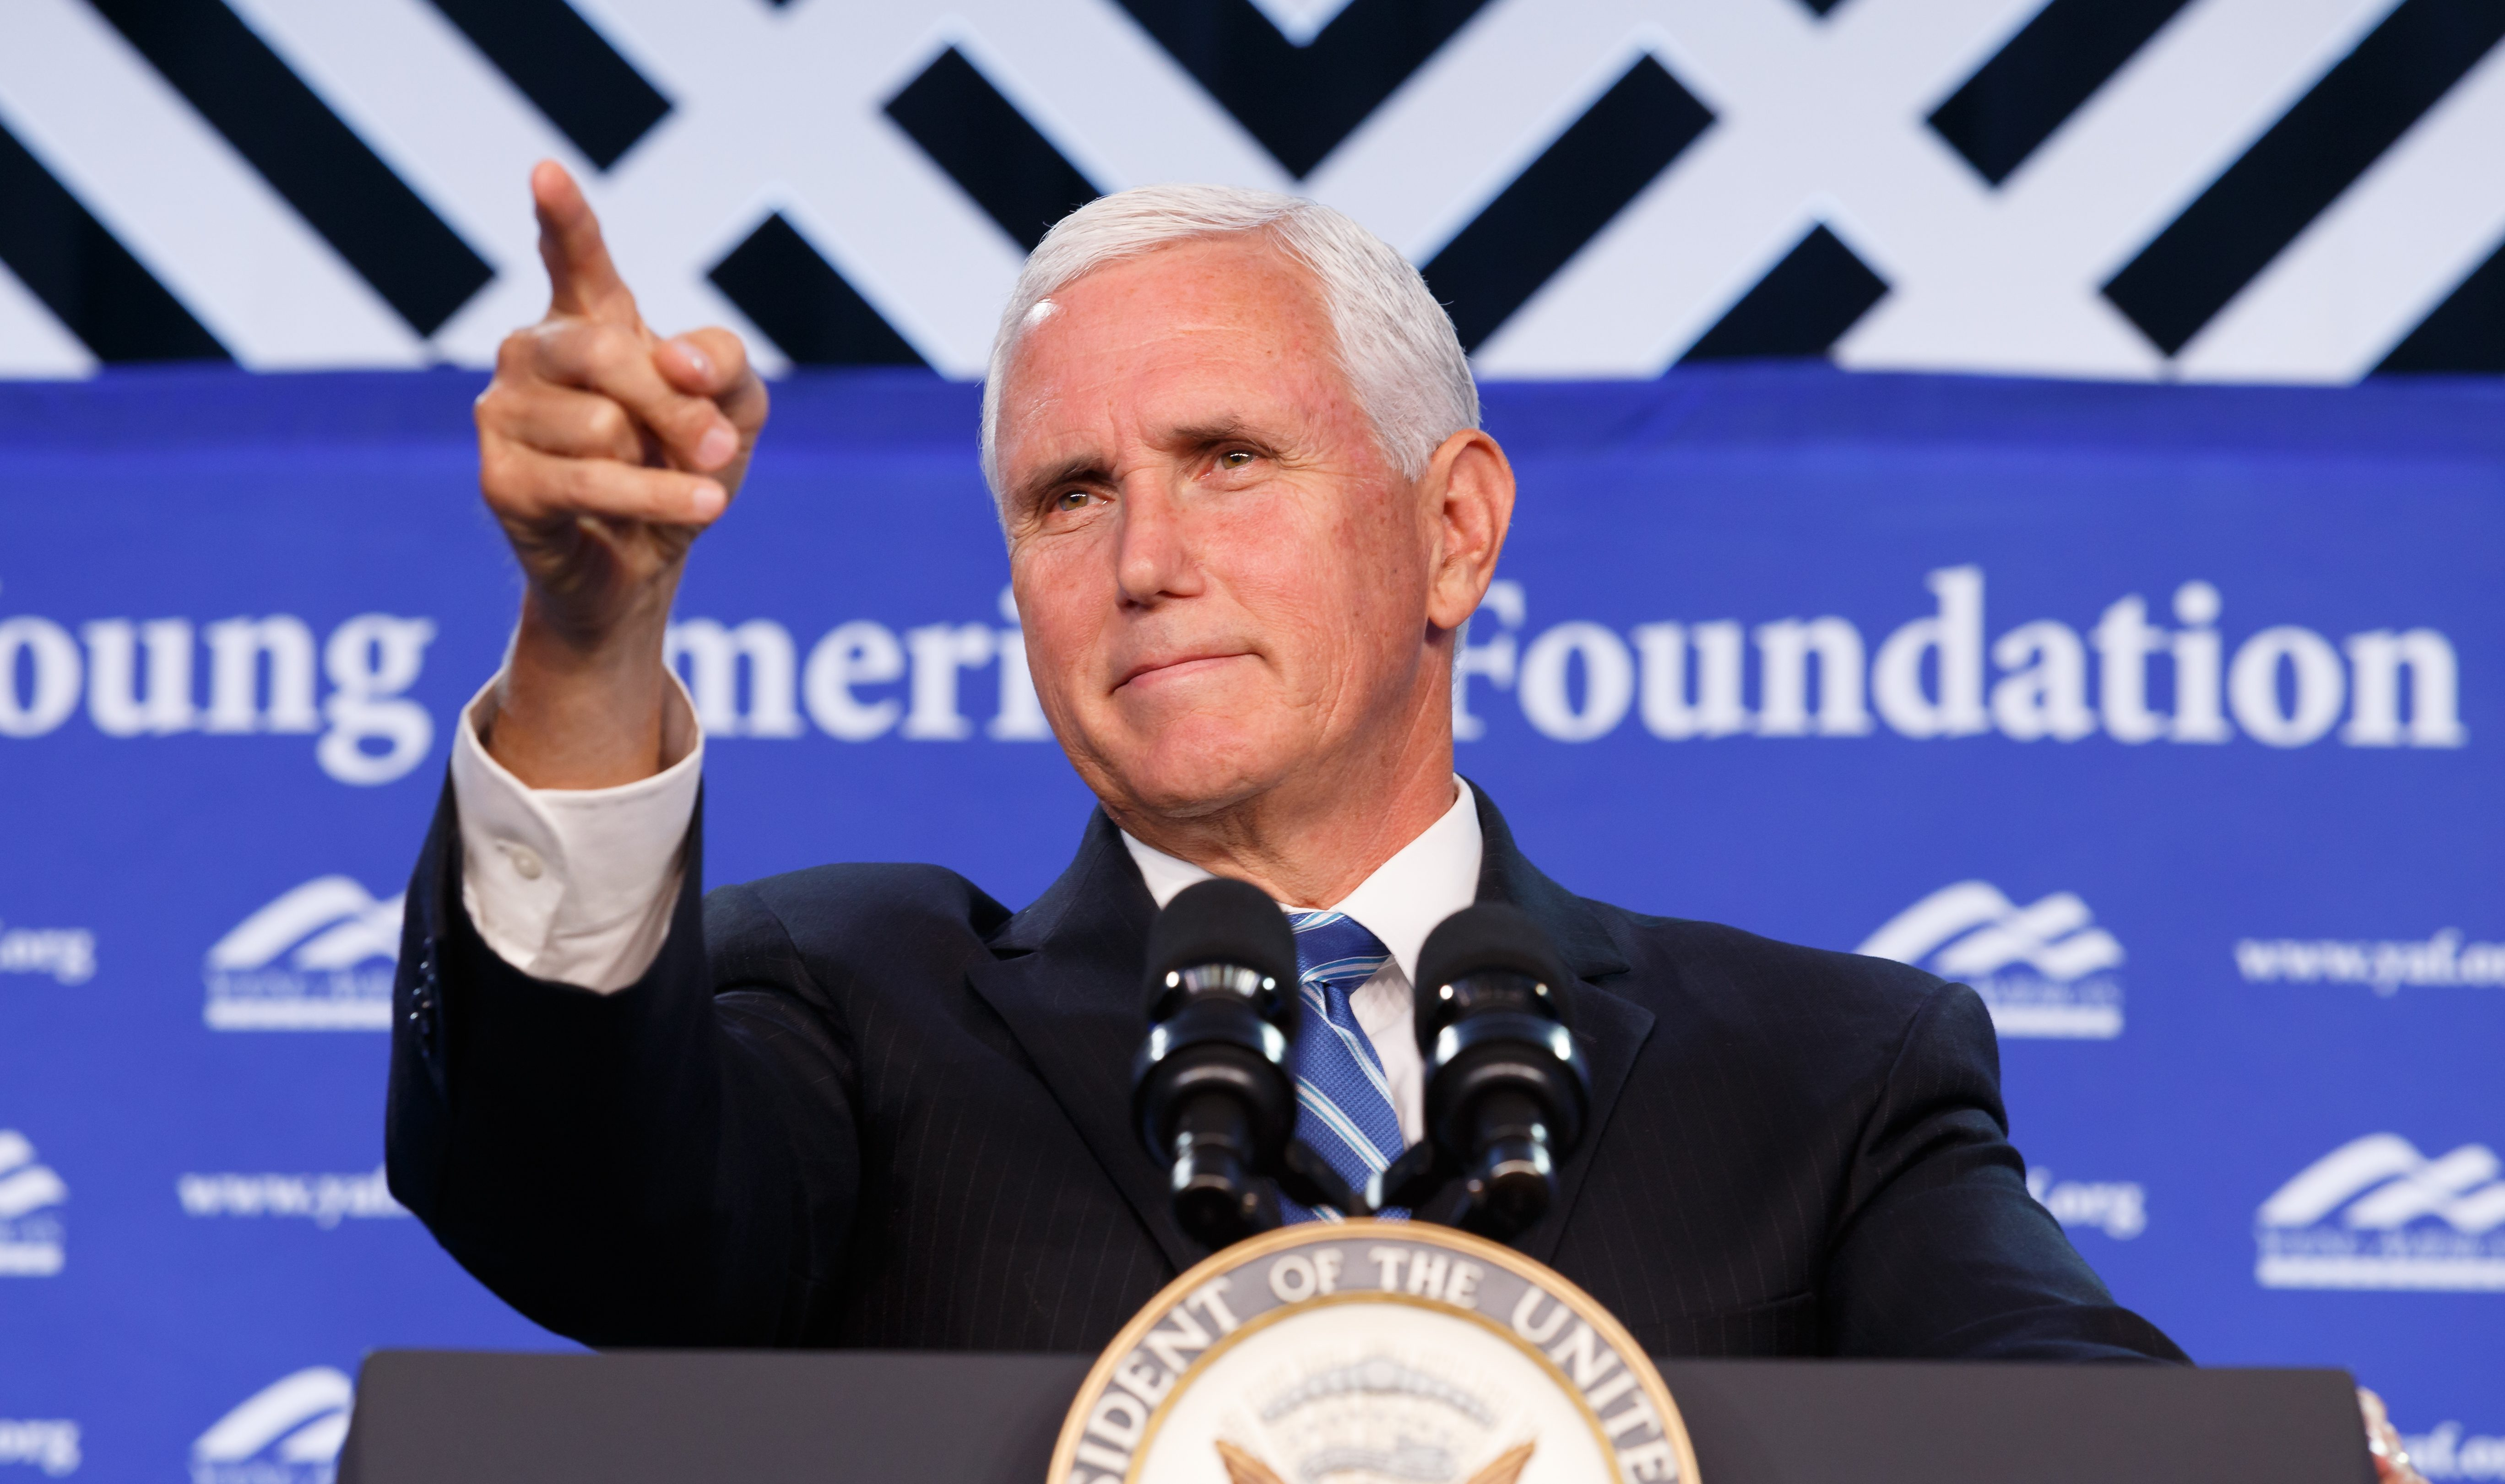 Mike Pence pointing